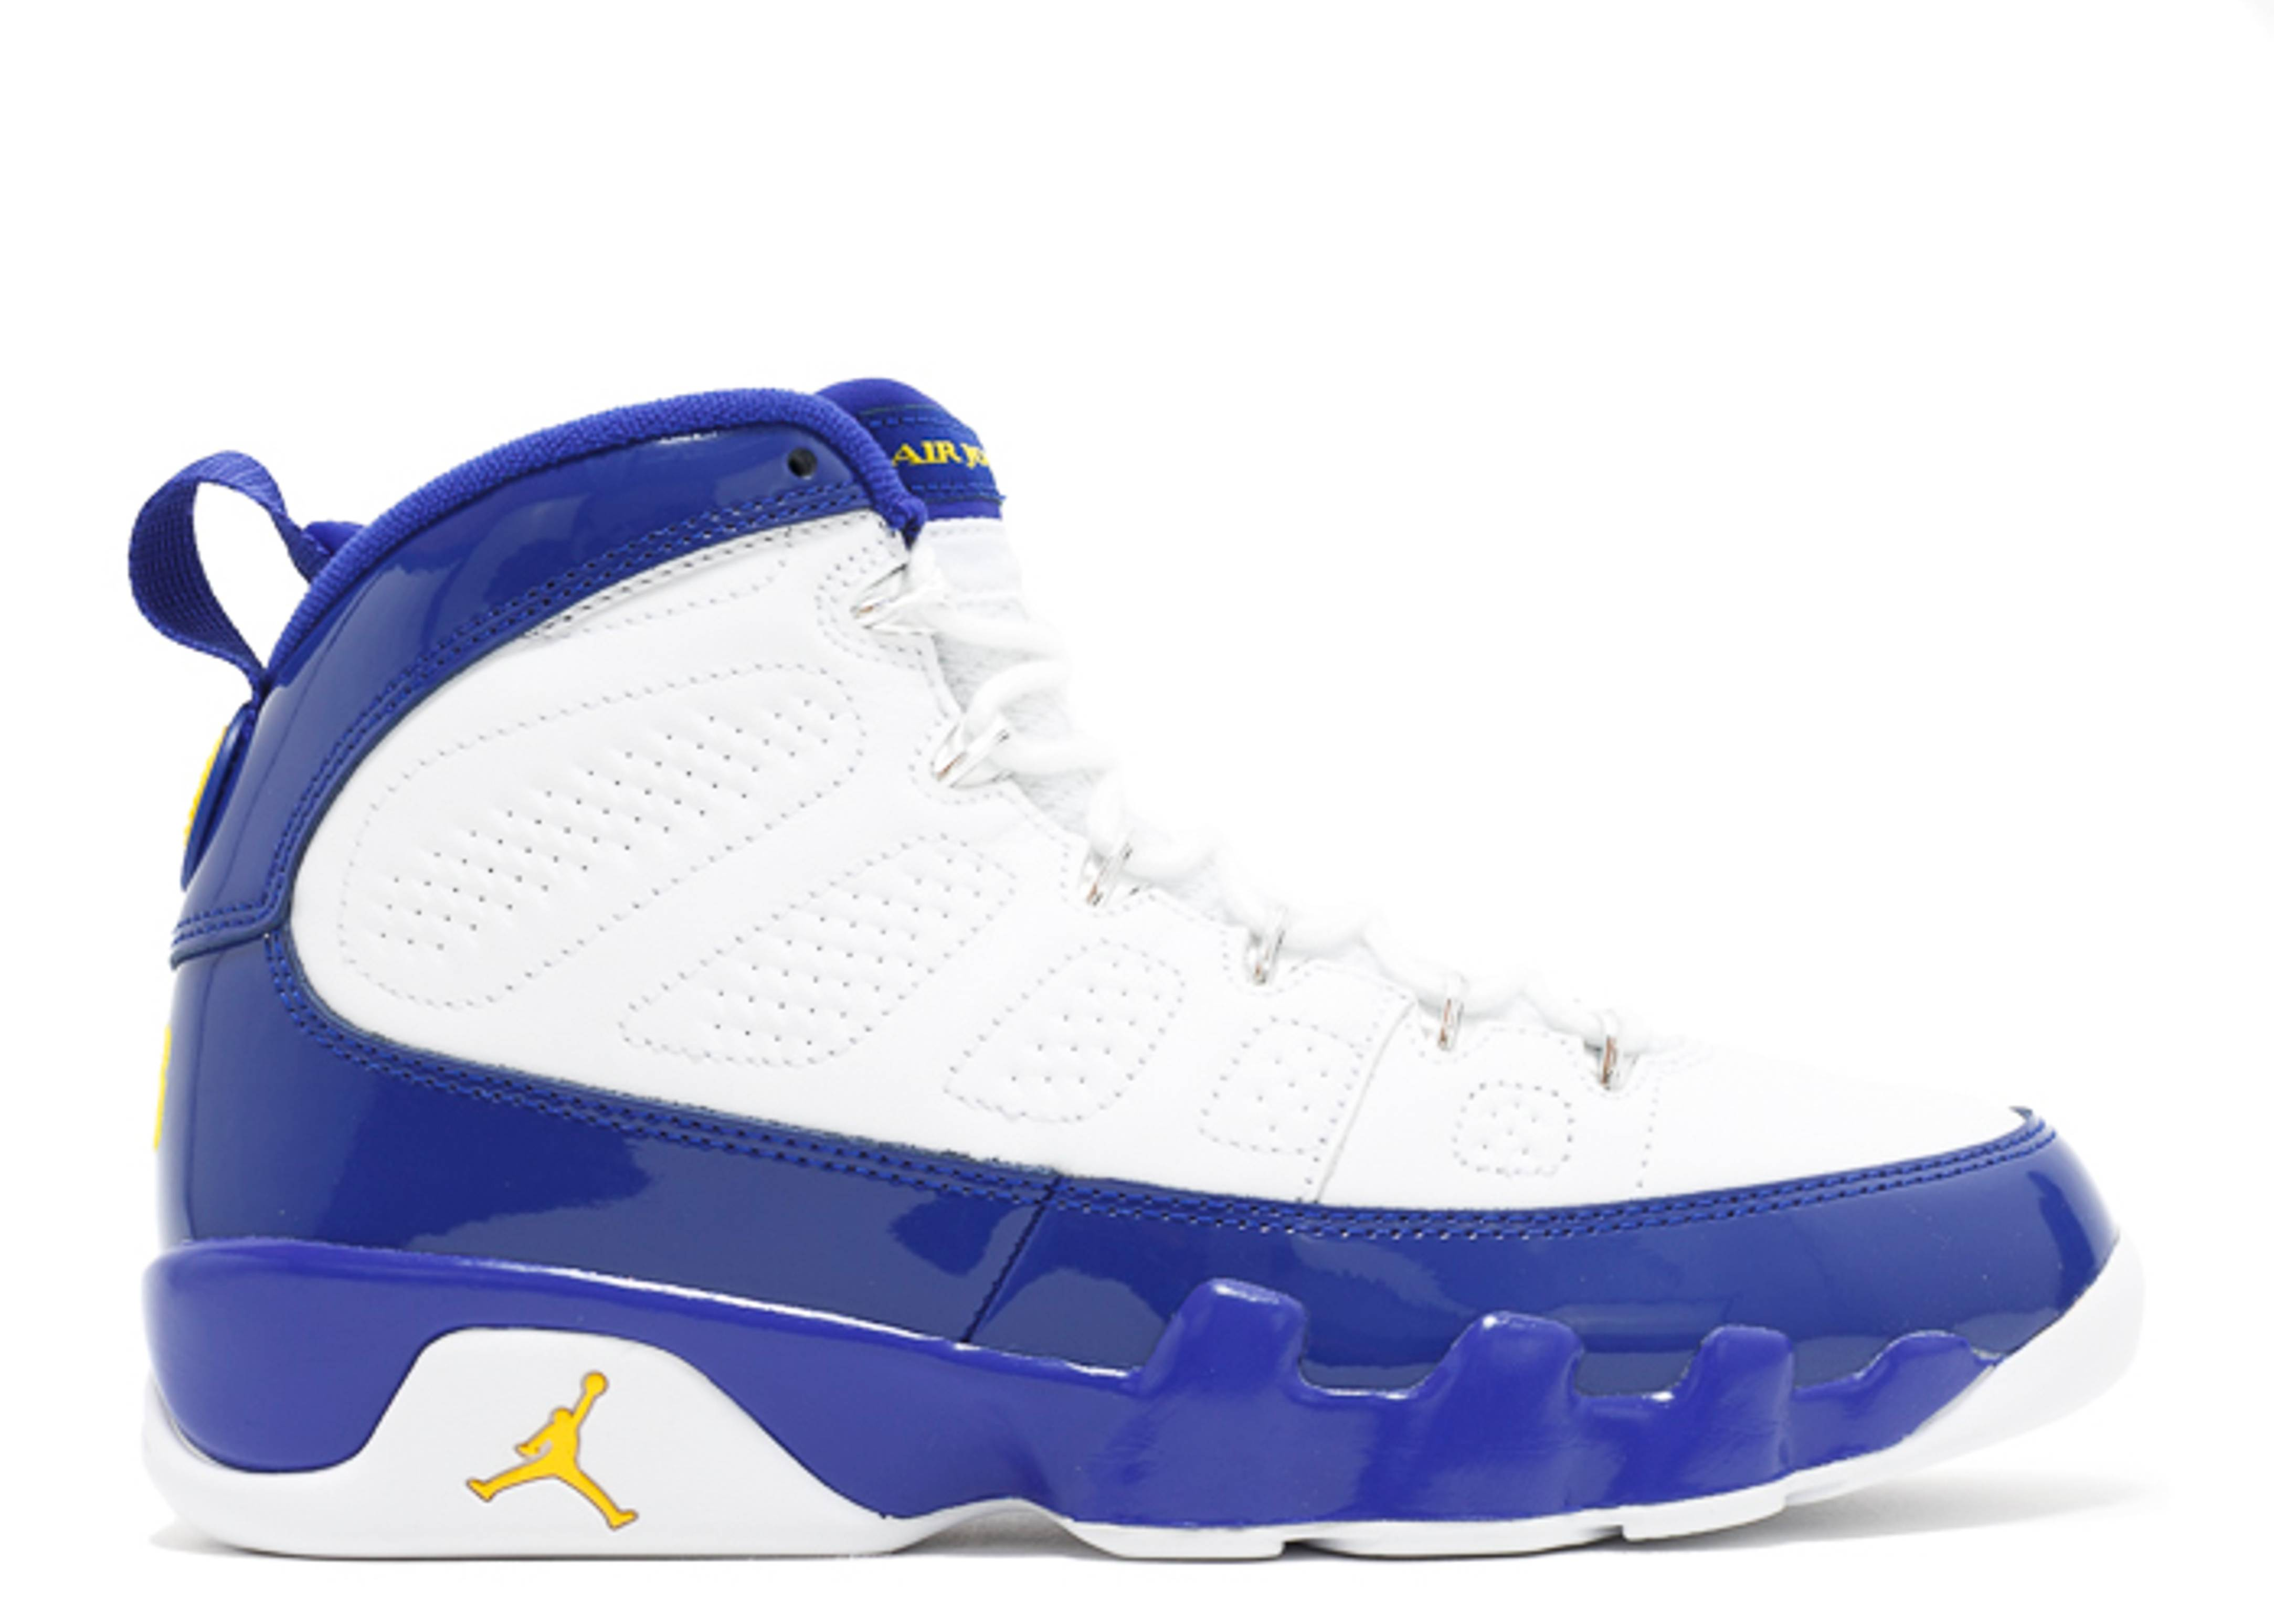 ab5ad6646c0 Air Jordan 9 Retro